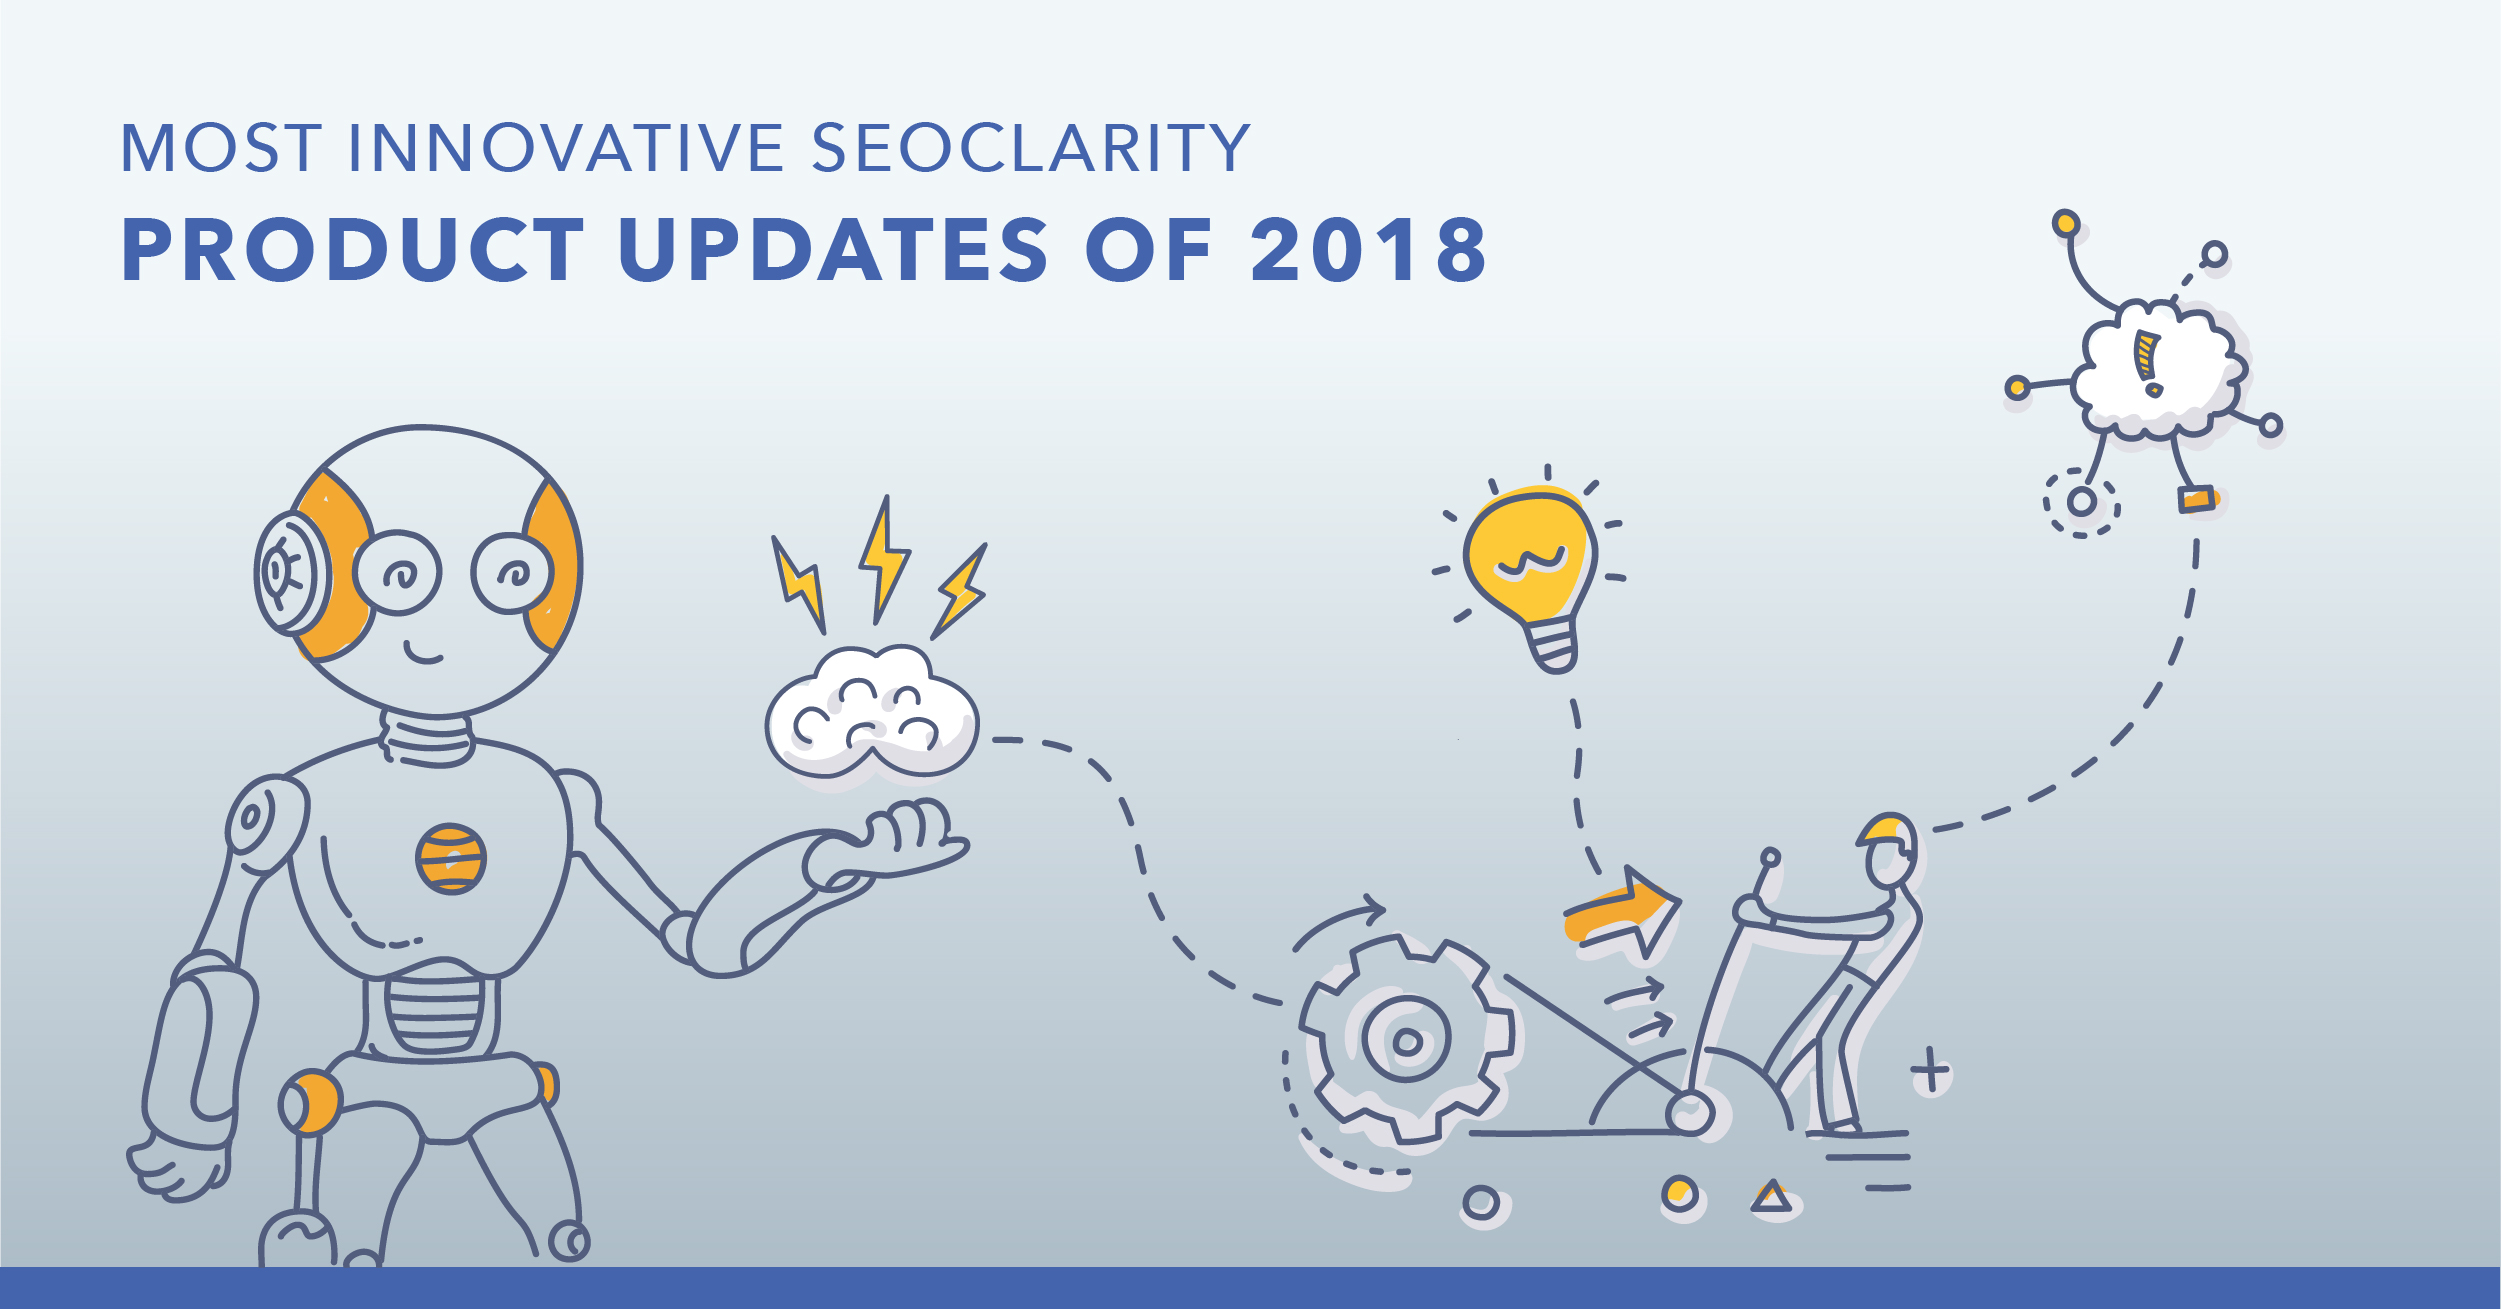 The Most Innovative seoClarity Product Updates of 2018